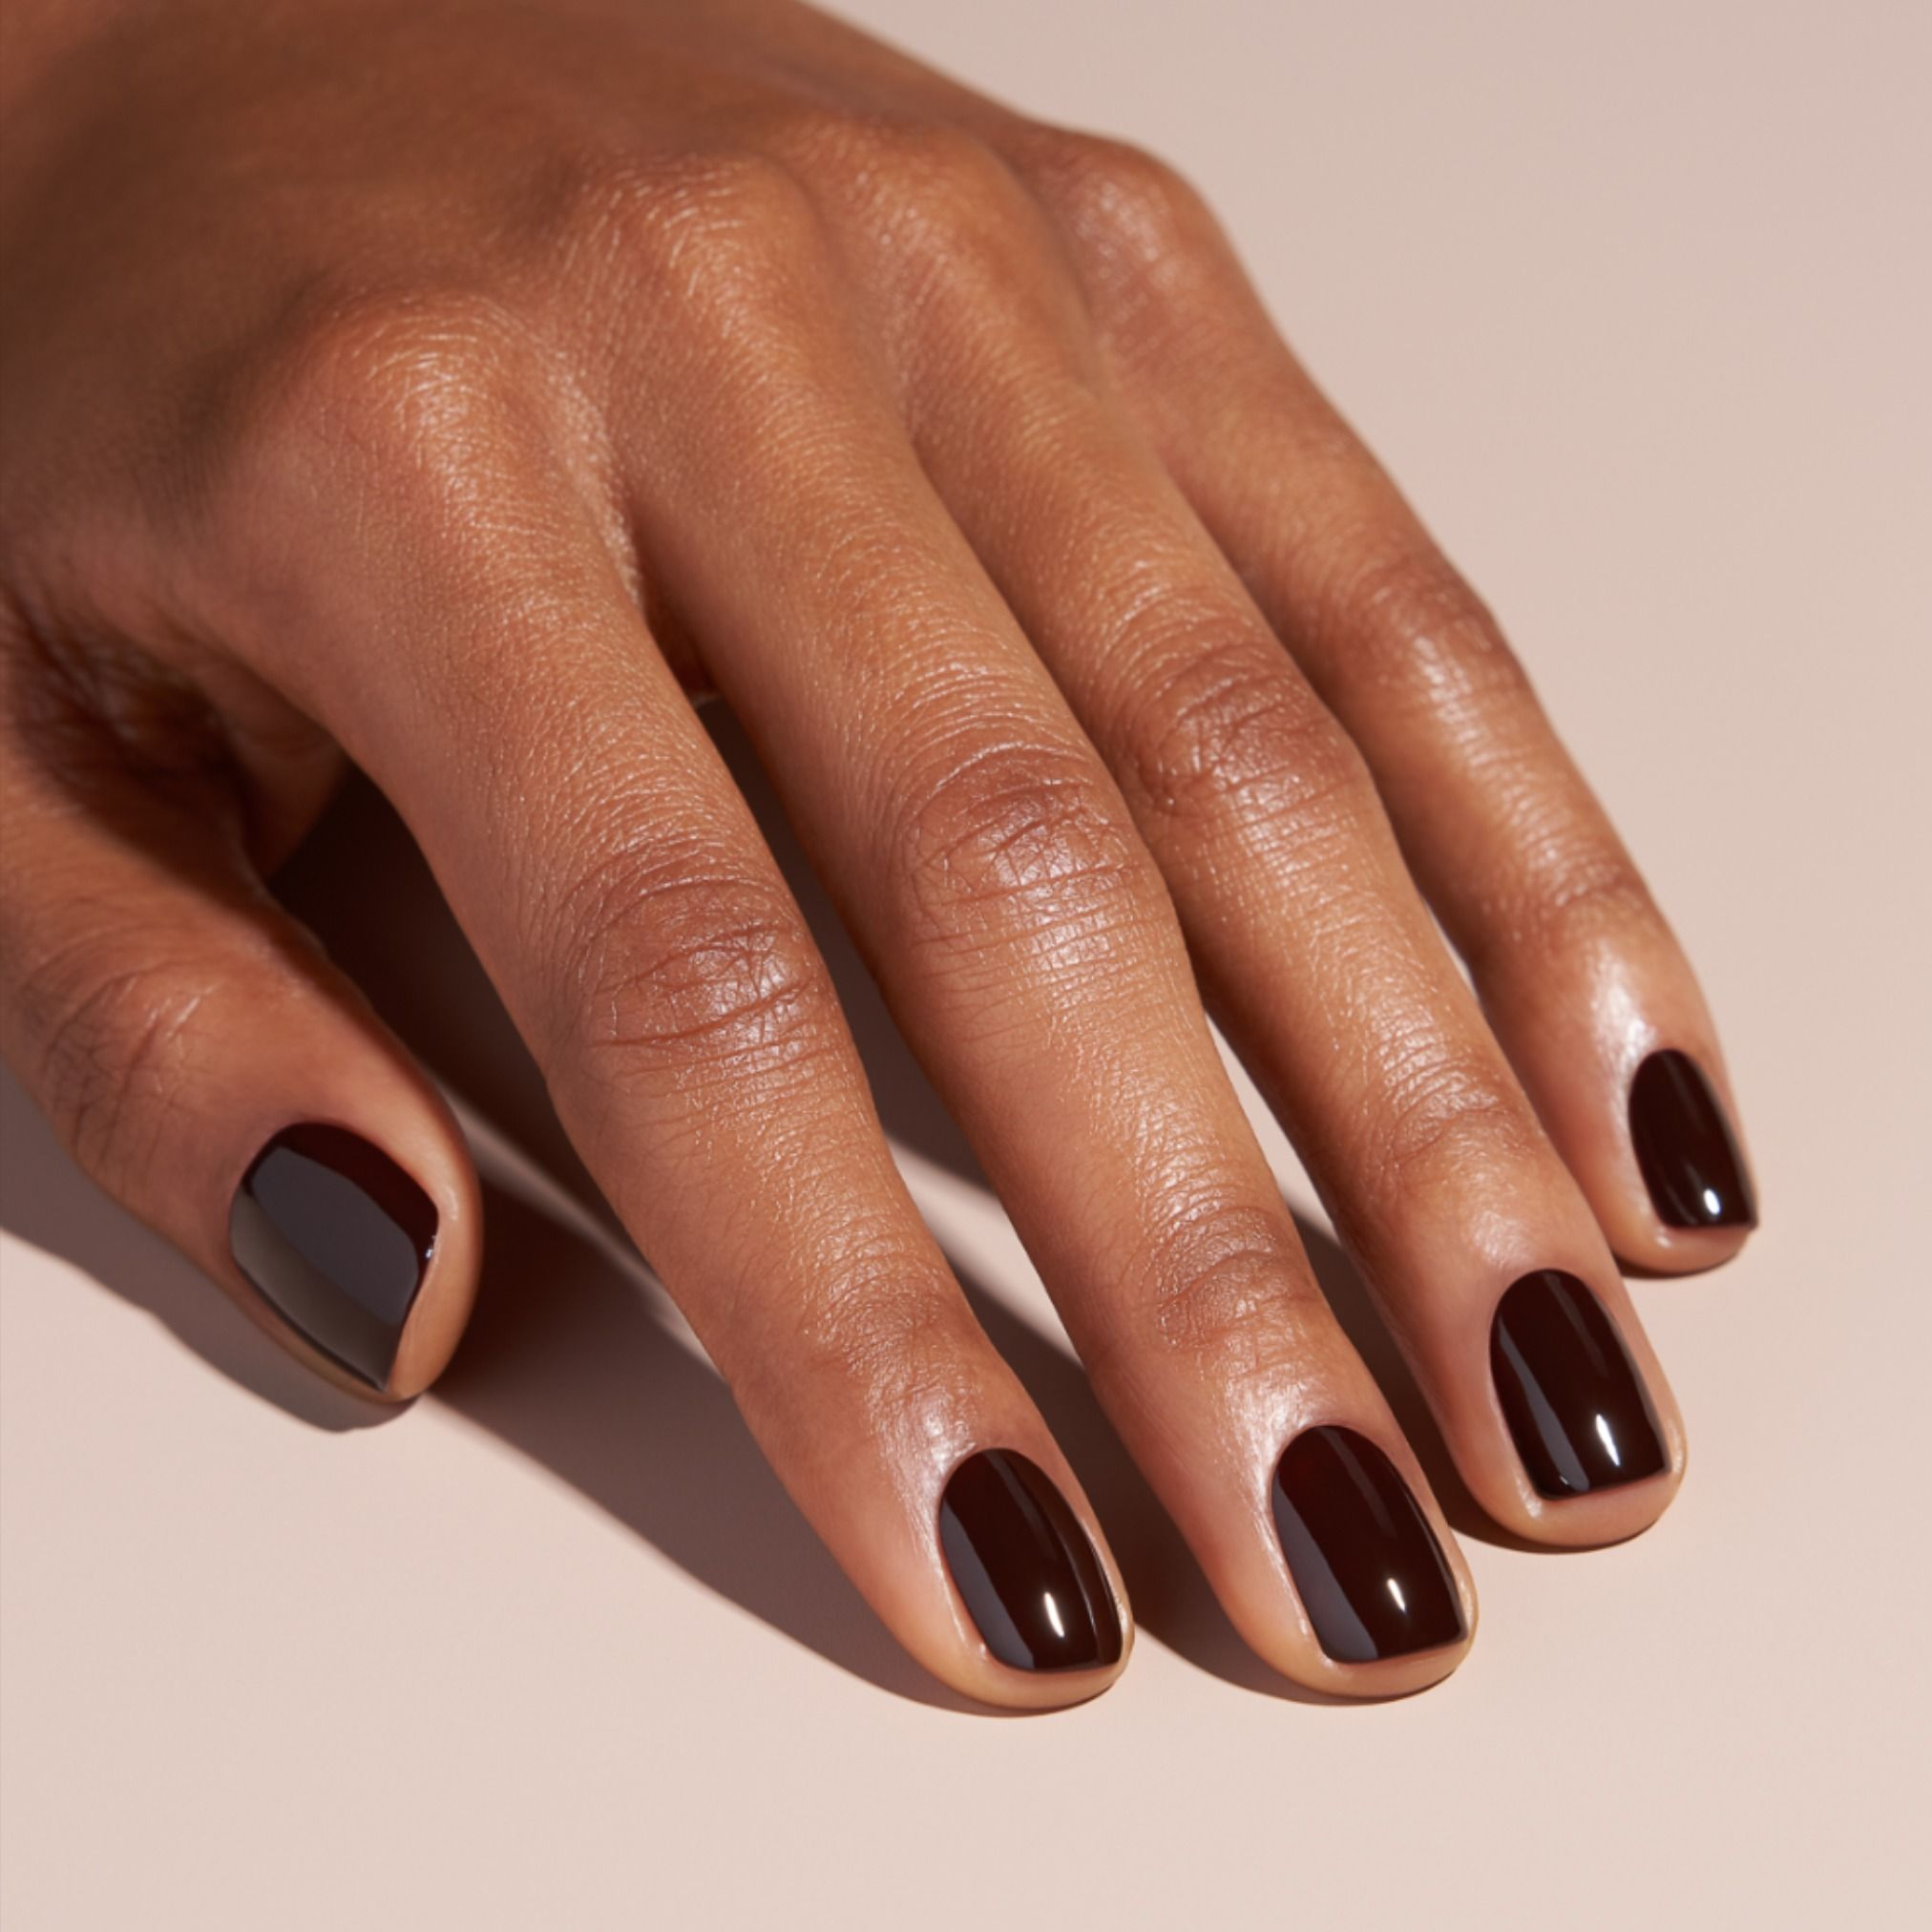 Cnd Black Cherry Nail Polish A Deep Rich Brown With A Tint Of Red Wine Nails Minimalist Nails Stylish Nails